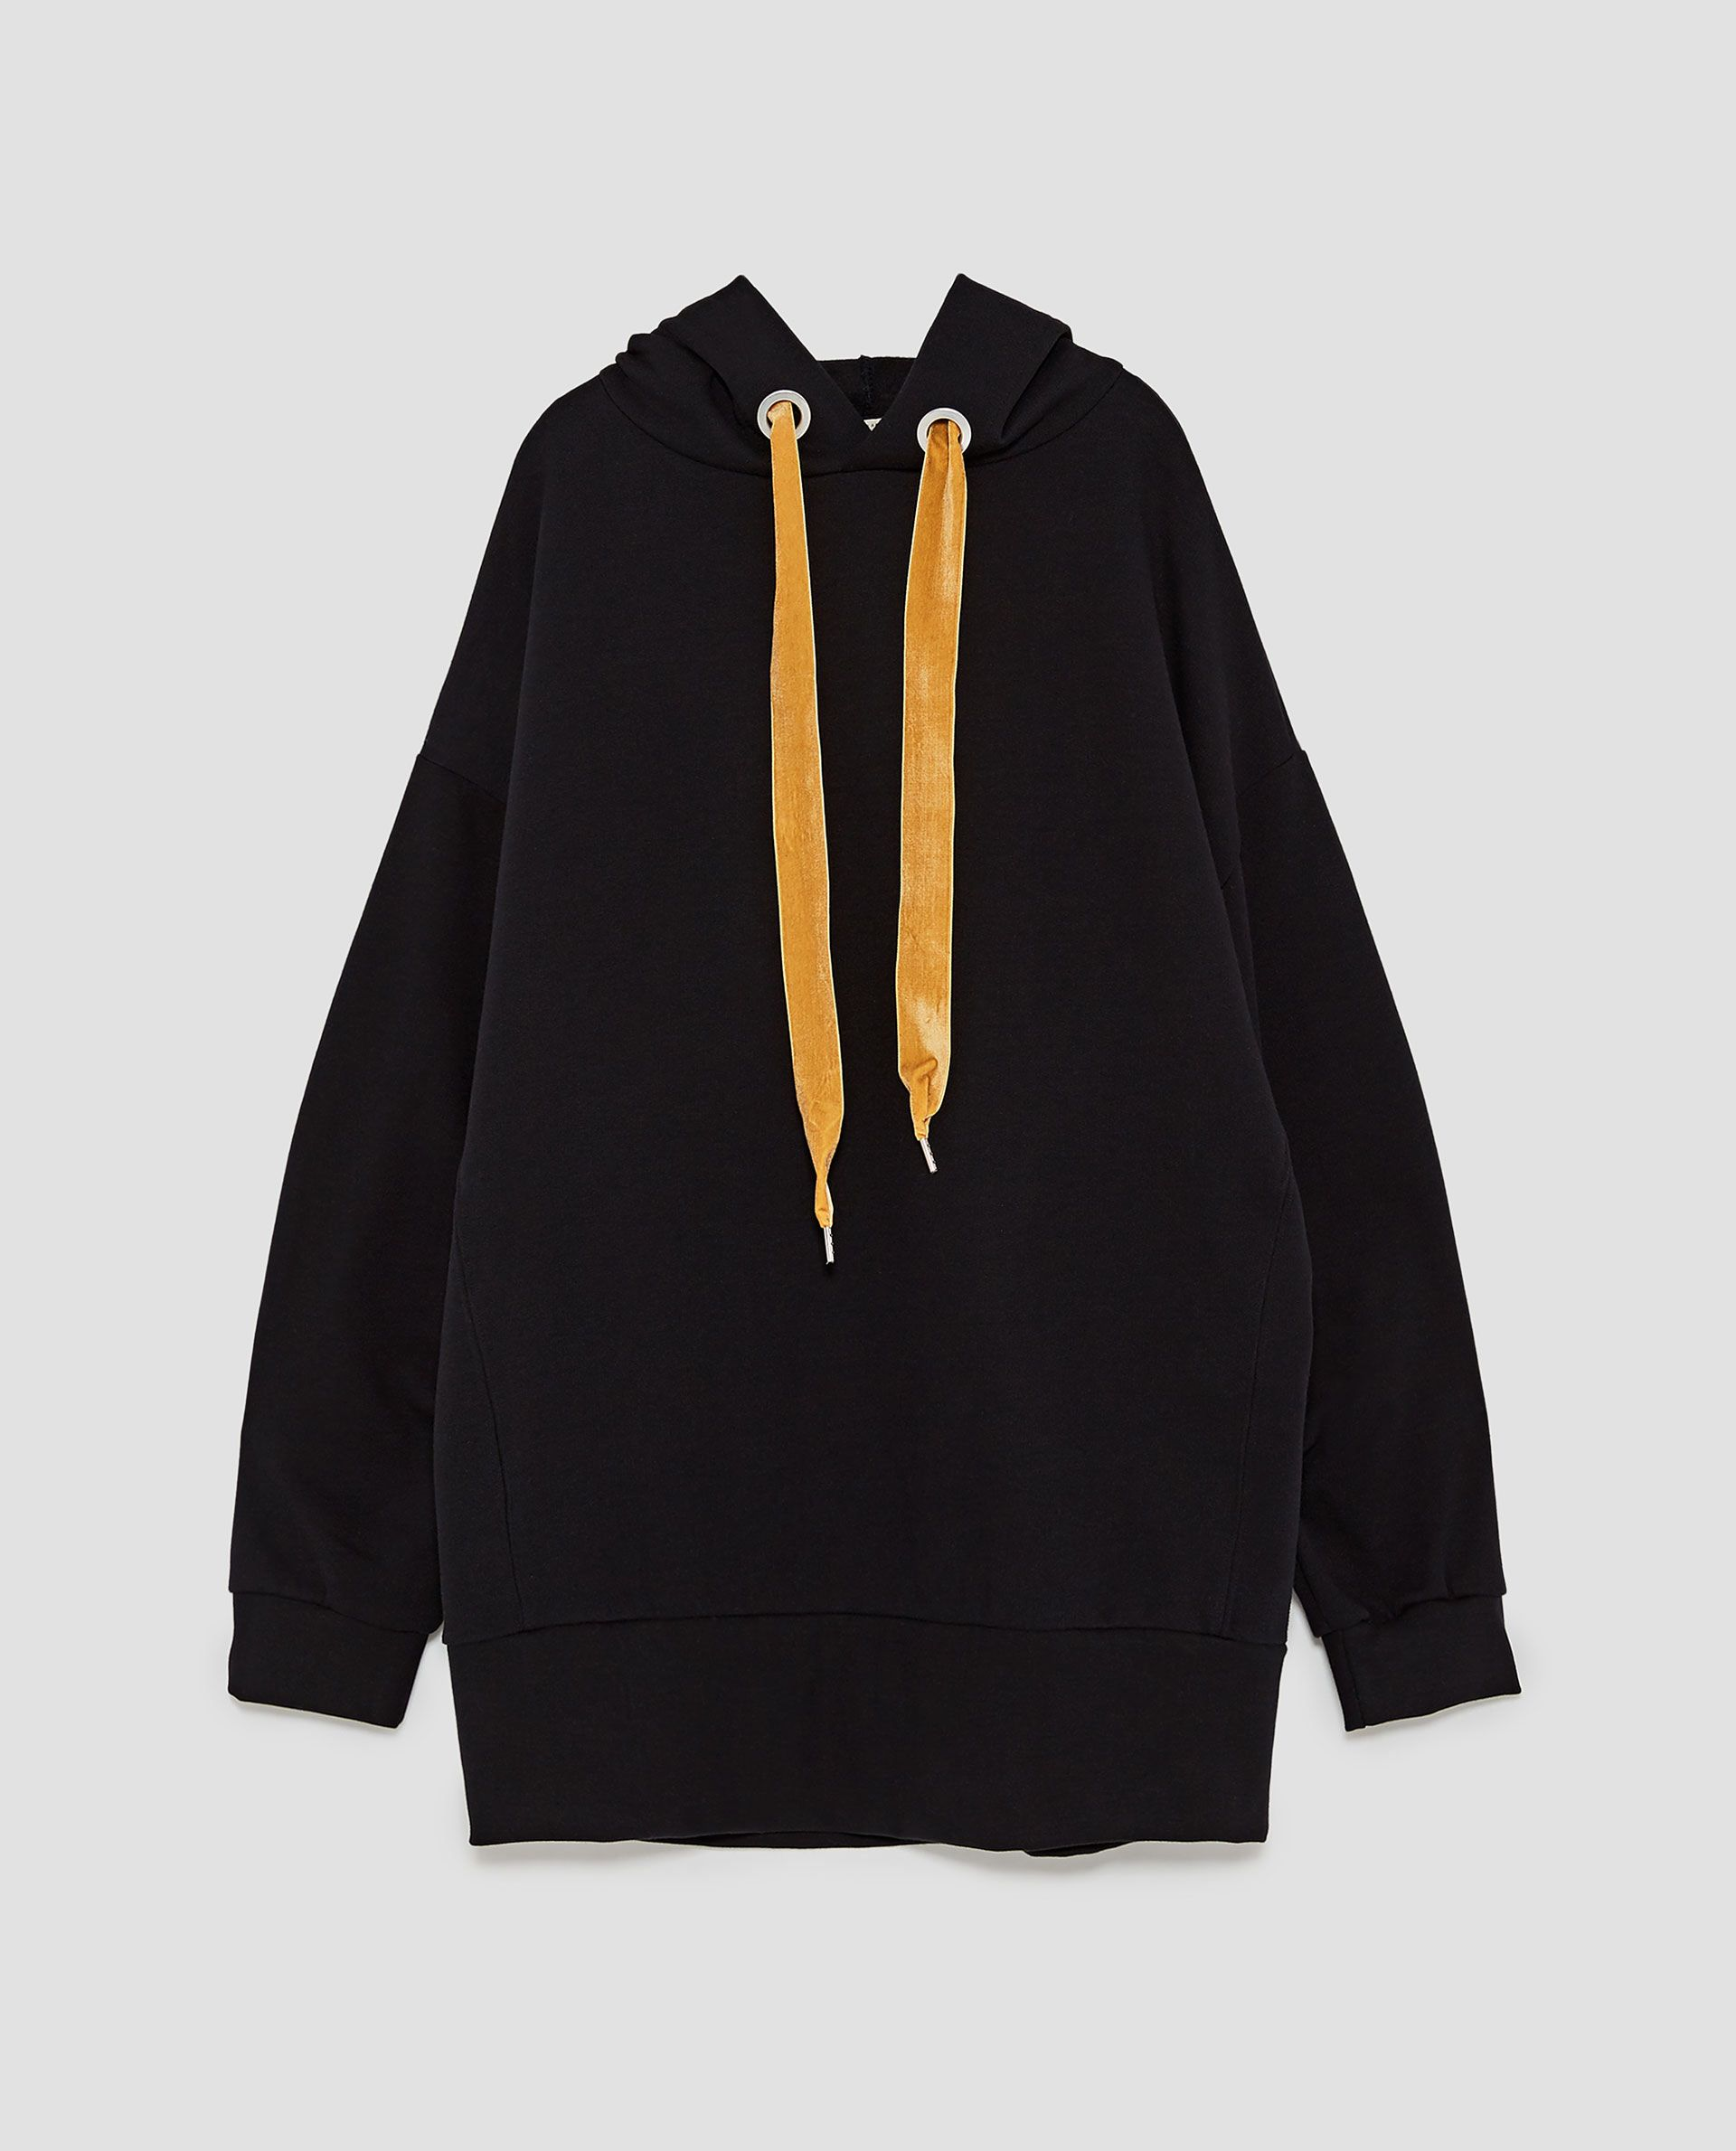 Pin by Christine on Ma mode | Hooded sweatshirts